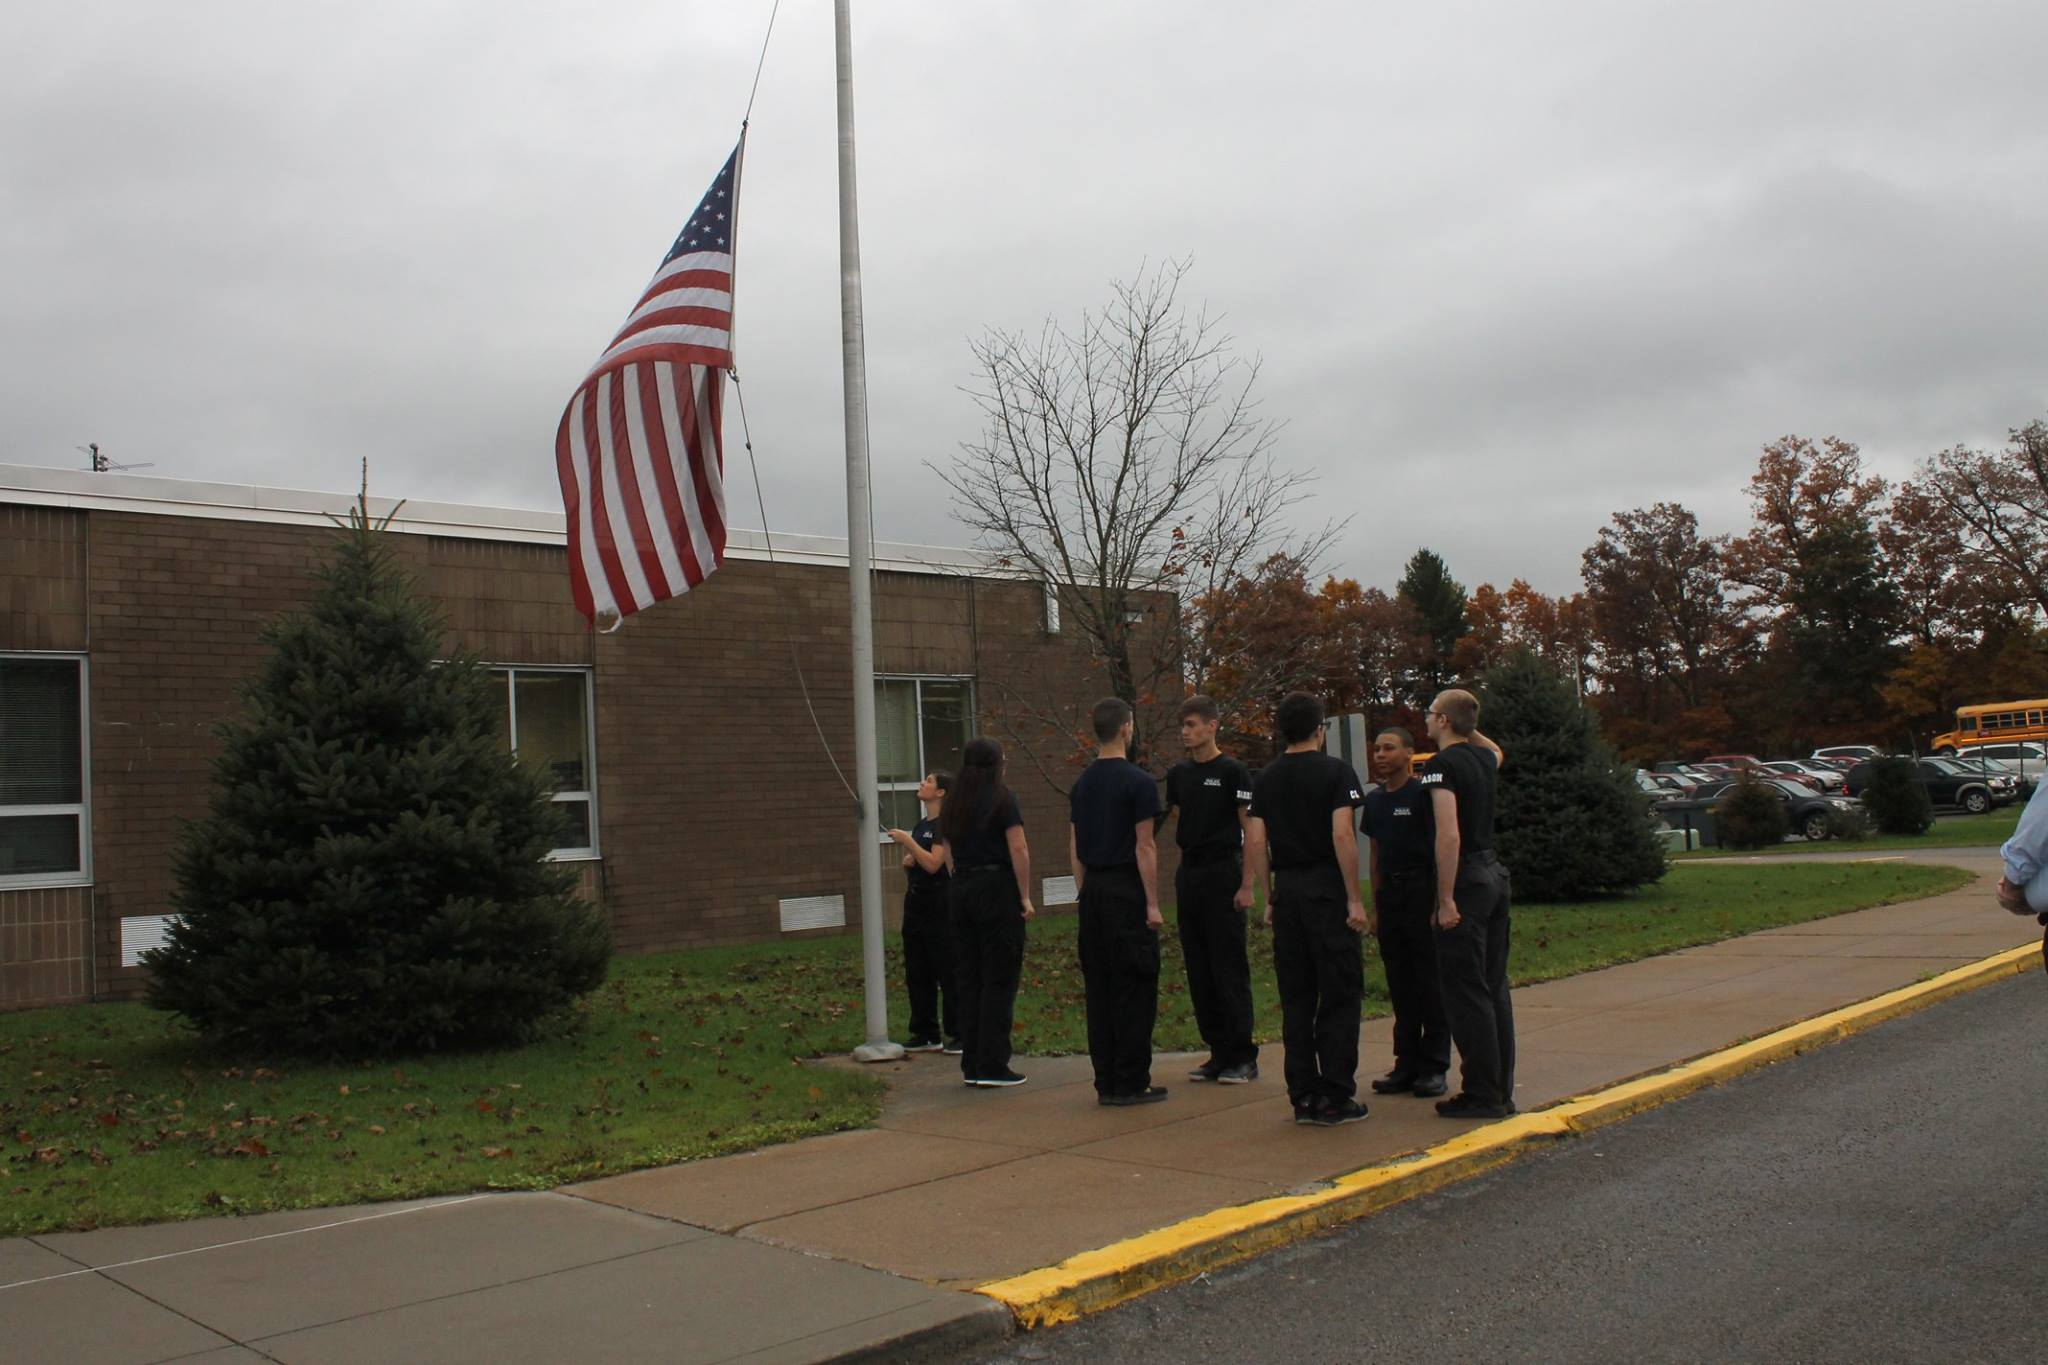 Morning session Police Science students completed a flag ceremony to lower and properly fold the school flag which had been damaged by the elements. Courtesy of Clarion County Career Center.